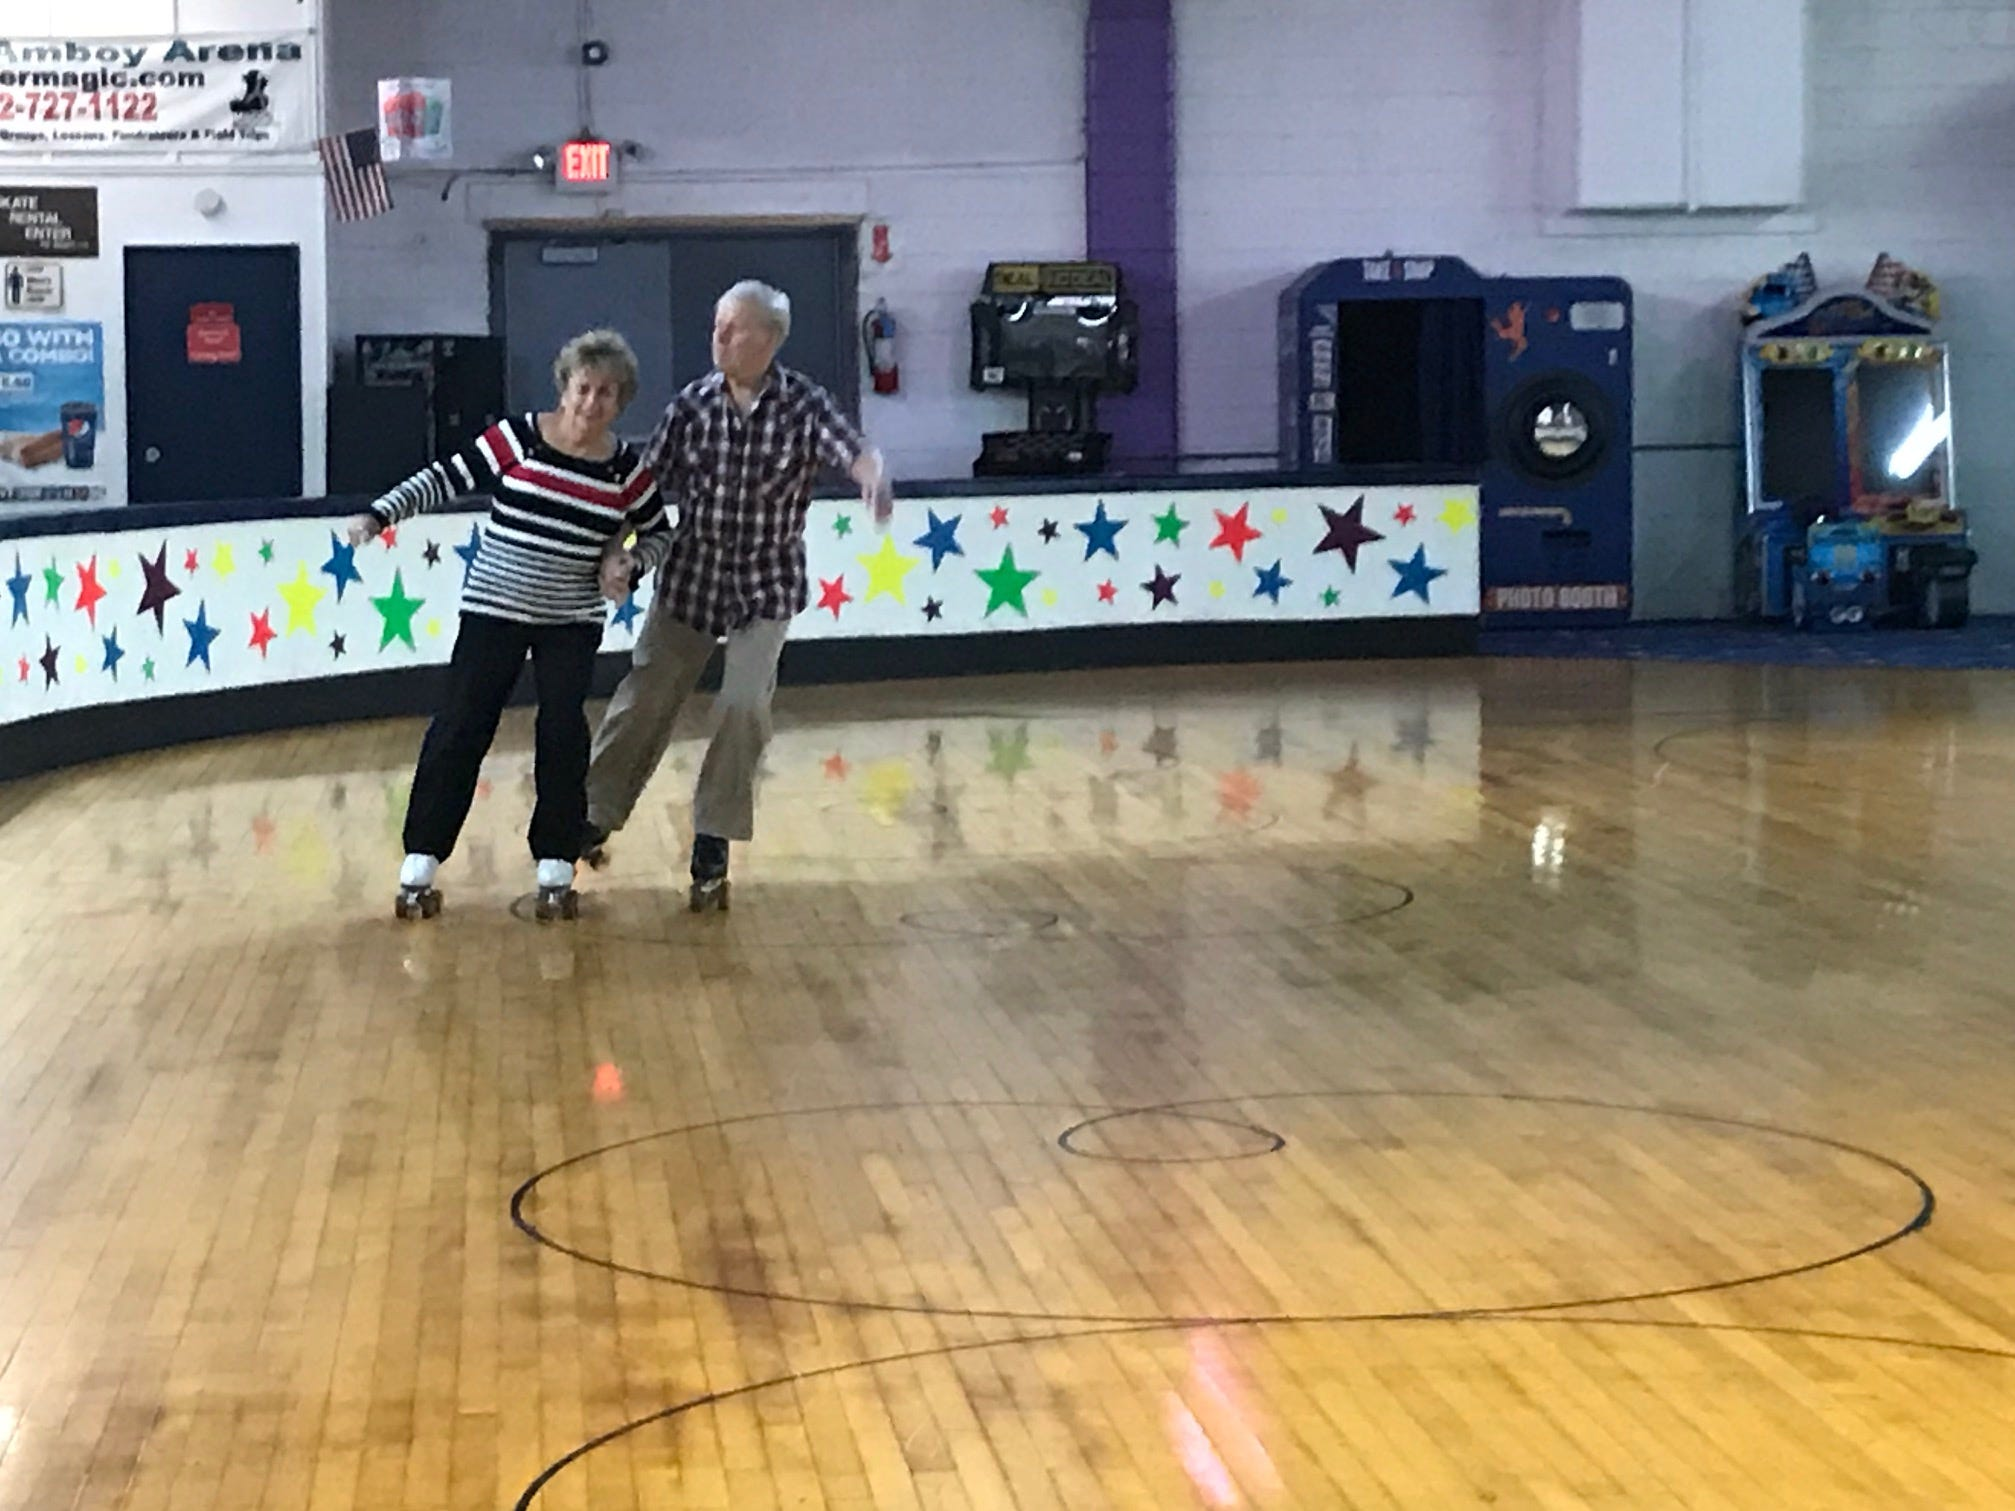 At least twice a week, more than 20 seniors, including Joannie Costello of Woodbridge and Eddie Daly of Newark, regularly gather at South Amboy Arenaand take to the rink for a couple hours of roller skating. They range in age from 55 to 100.